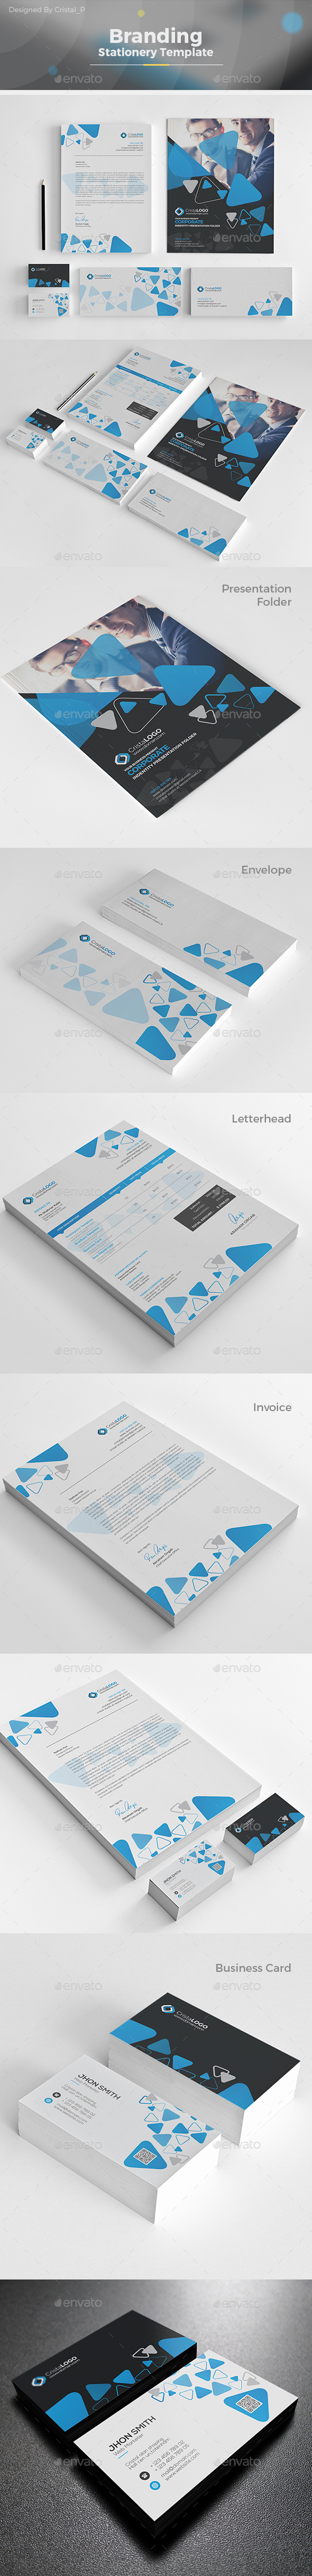 Branding Stationery Template - Stationery Print Templates